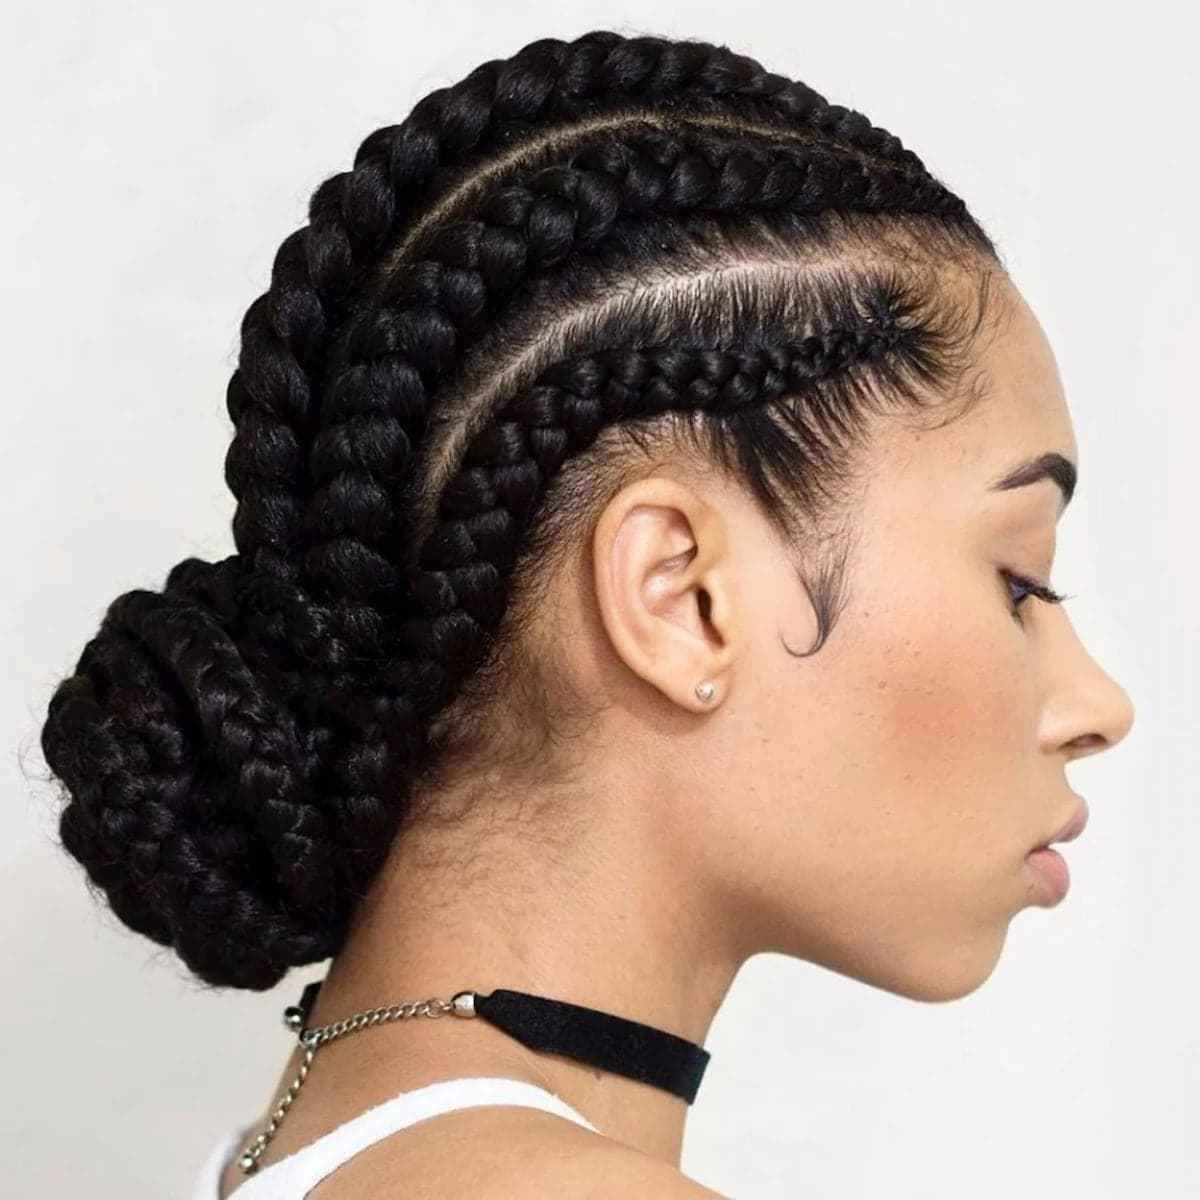 The Best Types Of Braids And Braids Hairstyles In Ghana Yen Com Gh Pictures